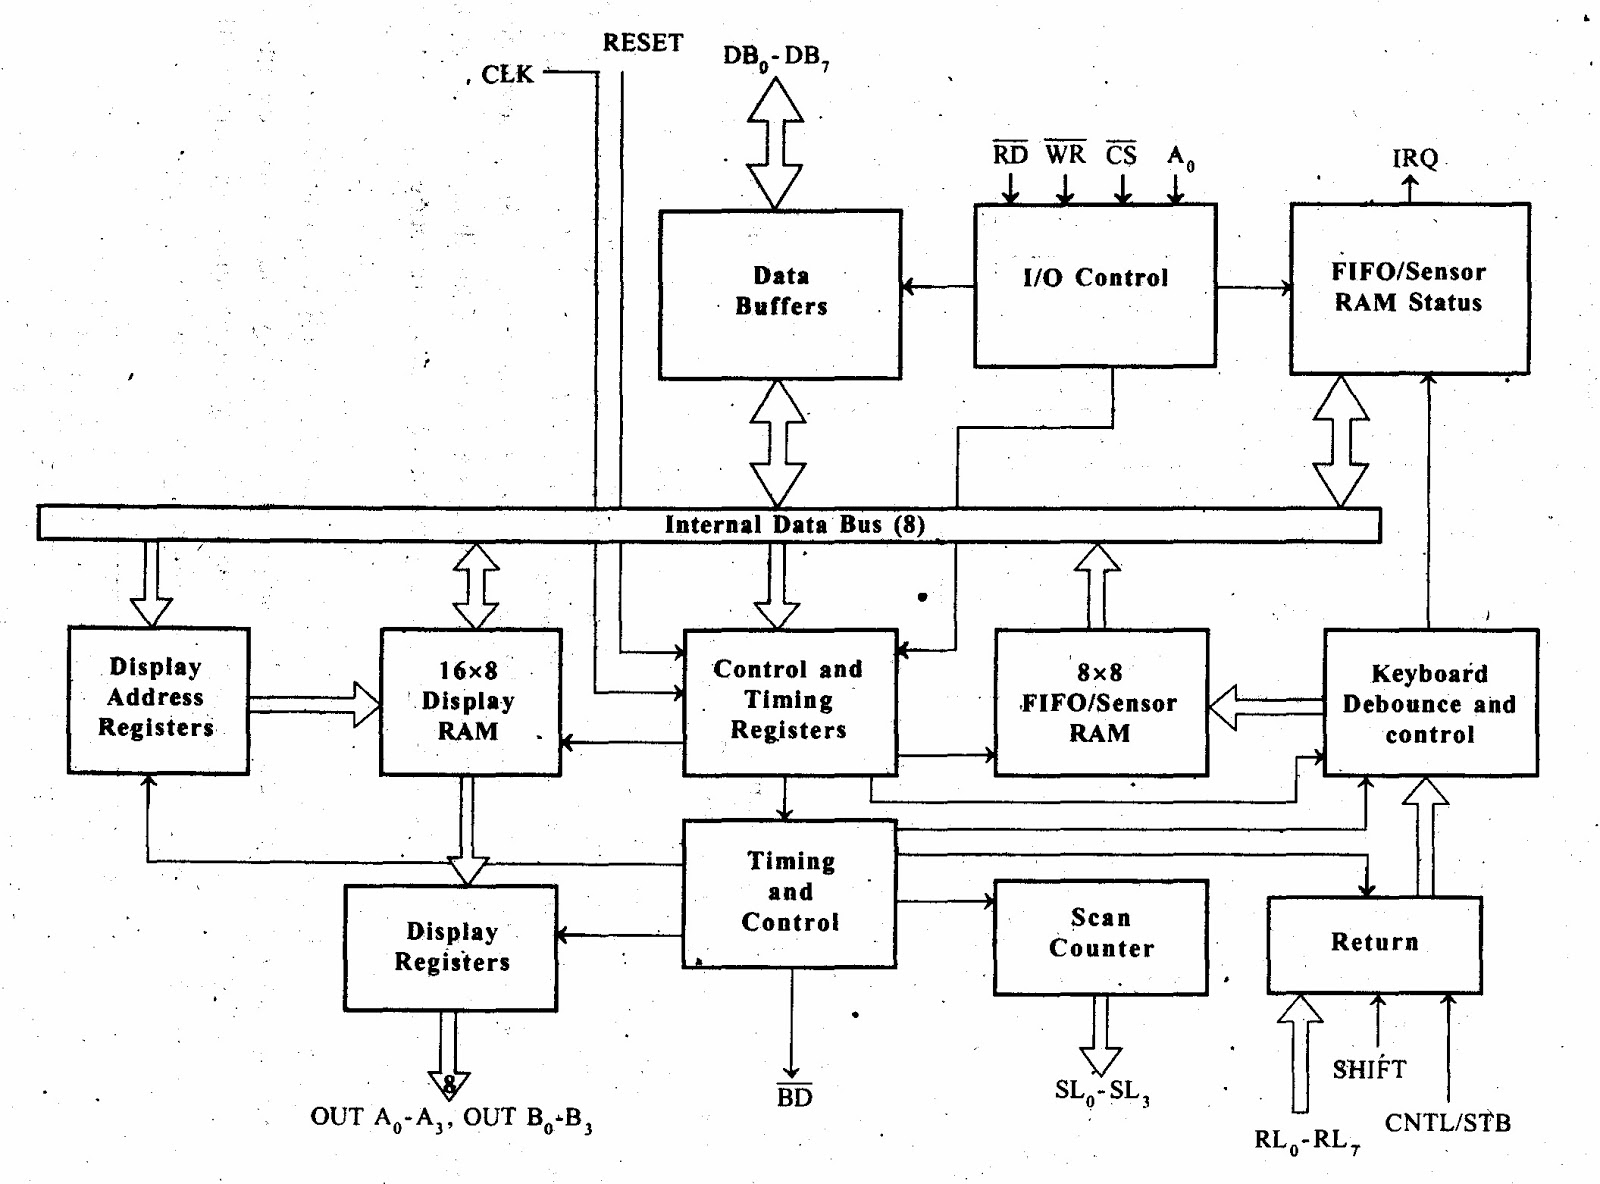 Functional Block Diagram Of 8086 Microprocessor Venn Fission And Fusion 8085 8051